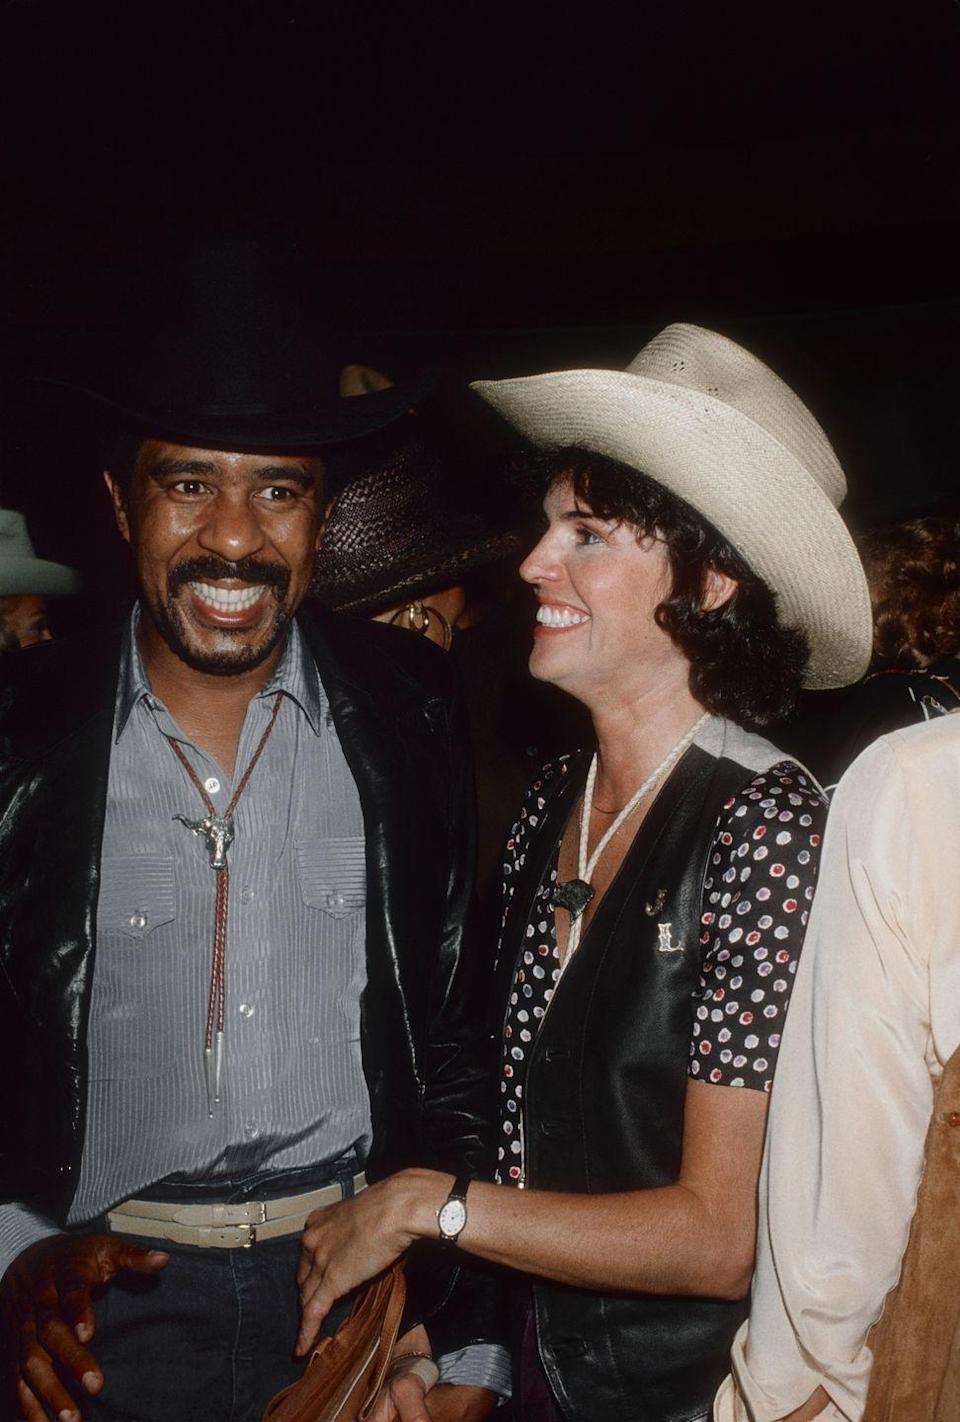 """<p>Jennifer Lee met comedian Richard Pryor in 1977, after being <a href=""""https://people.com/movies/sex-drugs-and-comedy-inside-richard-pryors-chaotic-love-life/"""" rel=""""nofollow noopener"""" target=""""_blank"""" data-ylk=""""slk:hired to decorate his home"""" class=""""link rapid-noclick-resp"""">hired to decorate his home</a>. The couple said """"I do"""" in 1981 and were married for a year before divorcing. After their marriage, Richard married Flynn Belaine (twice!), but reconciled with Jennifer in 1994 after a diagnosis of degenerative multiple sclerosis. They got married for the second time in 2001 and were together until his death in 2005. </p>"""